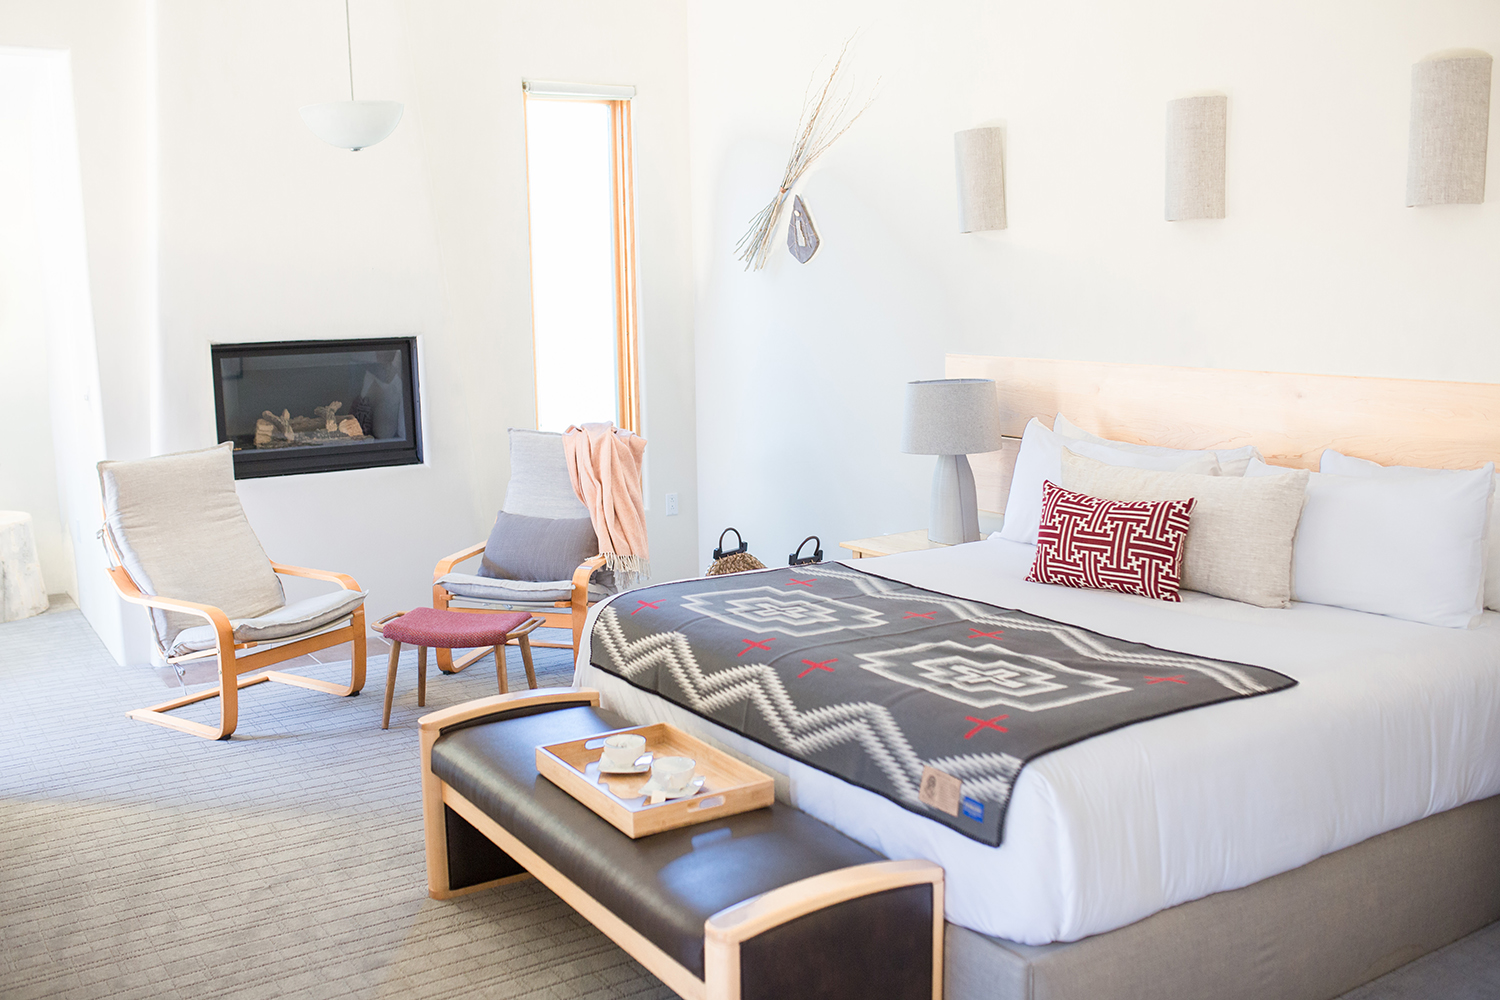 The enchanting accommodations features local artisan touches and a gas fireplace.